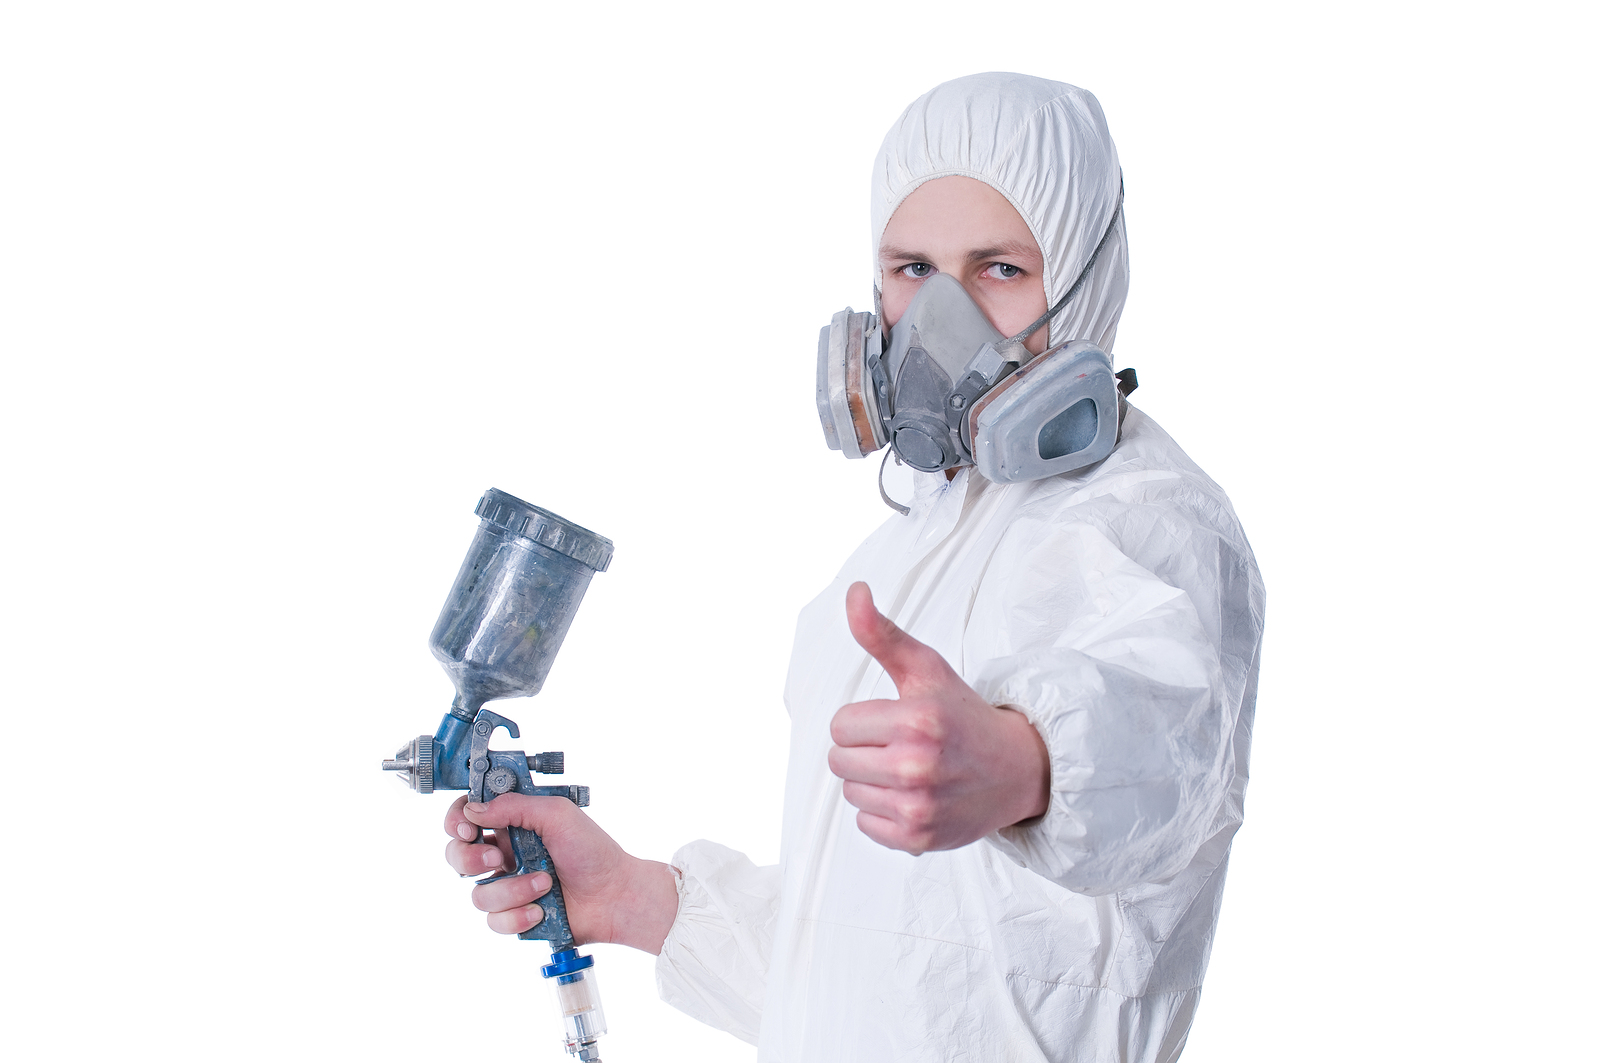 10 tips for better spray painting go paint sprayer On spray painting safety equipment